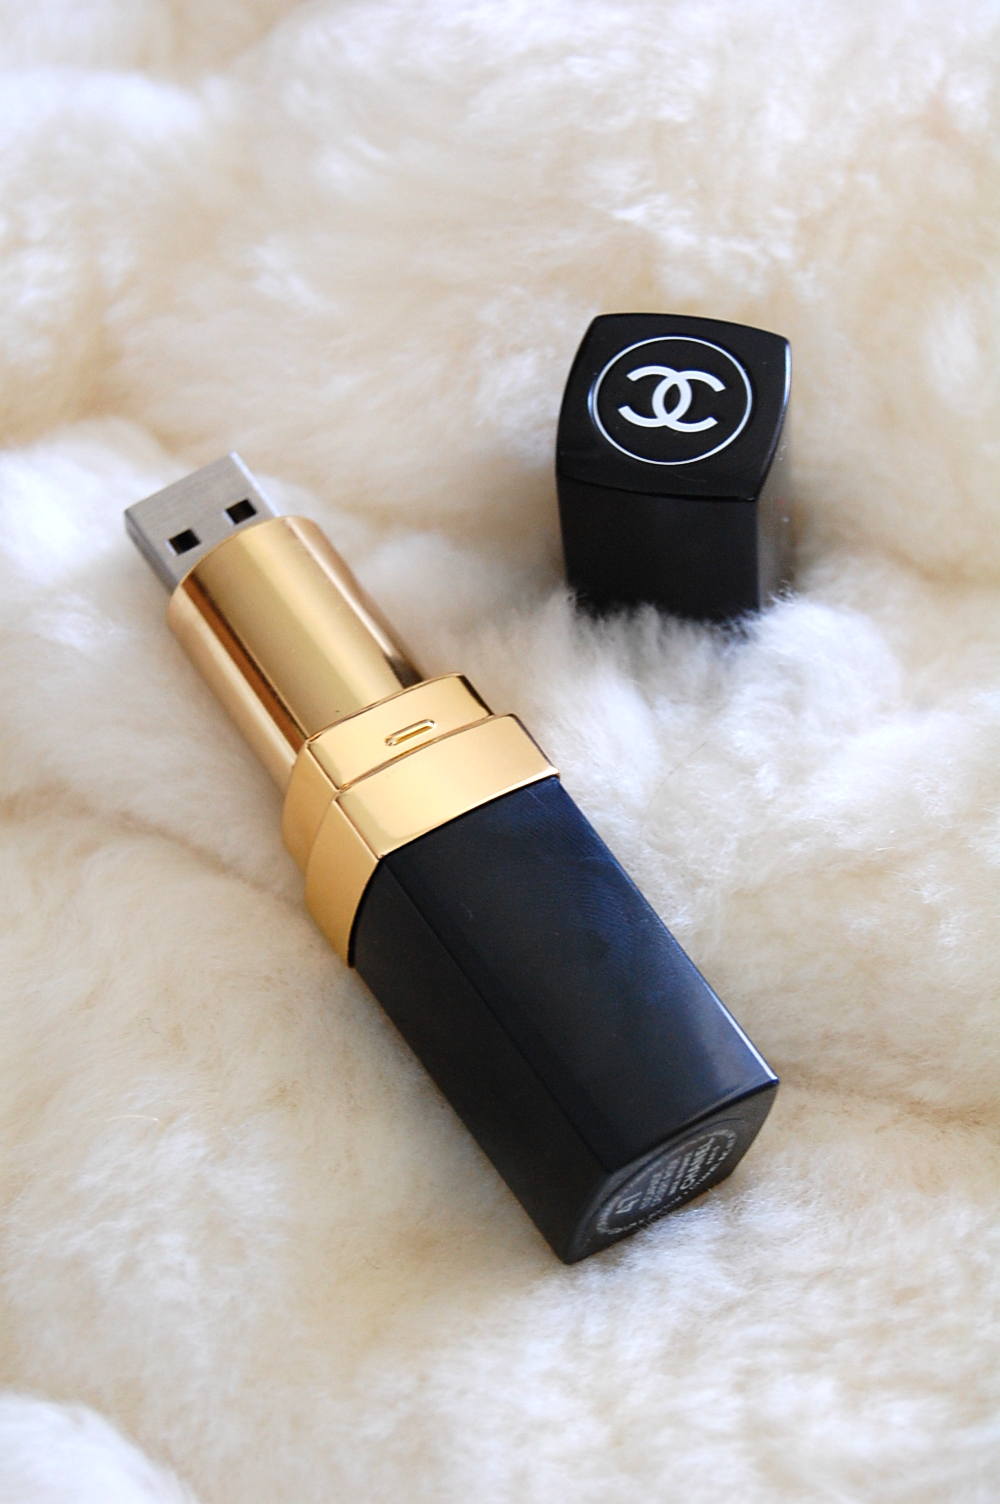 Chanel lipstick USB flash drive memory stick